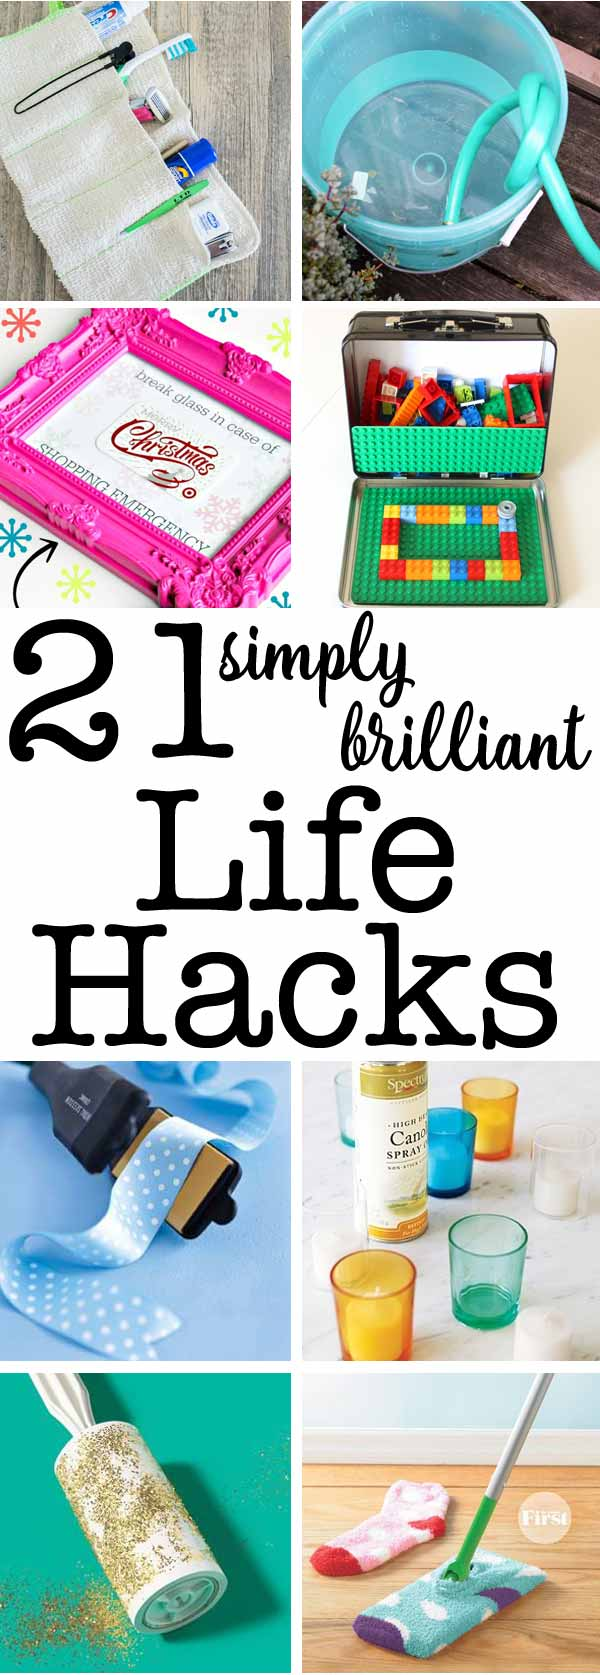 Life Hacks: simply brilliant ideas